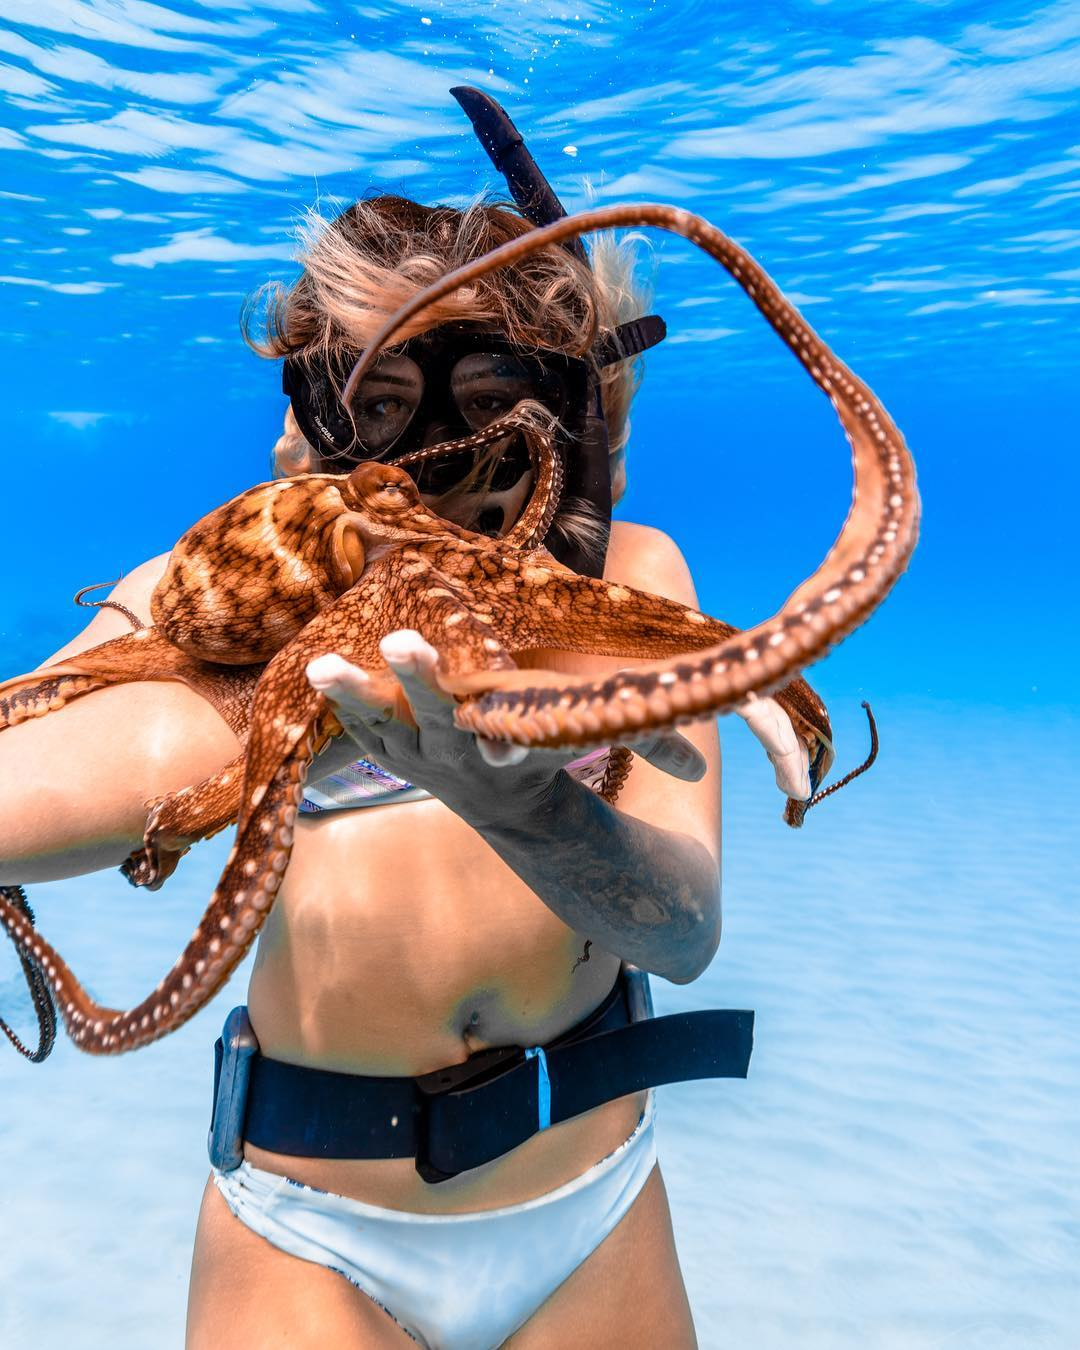 Find an Octopus - #47 of 50 Best Things to do on Oahu